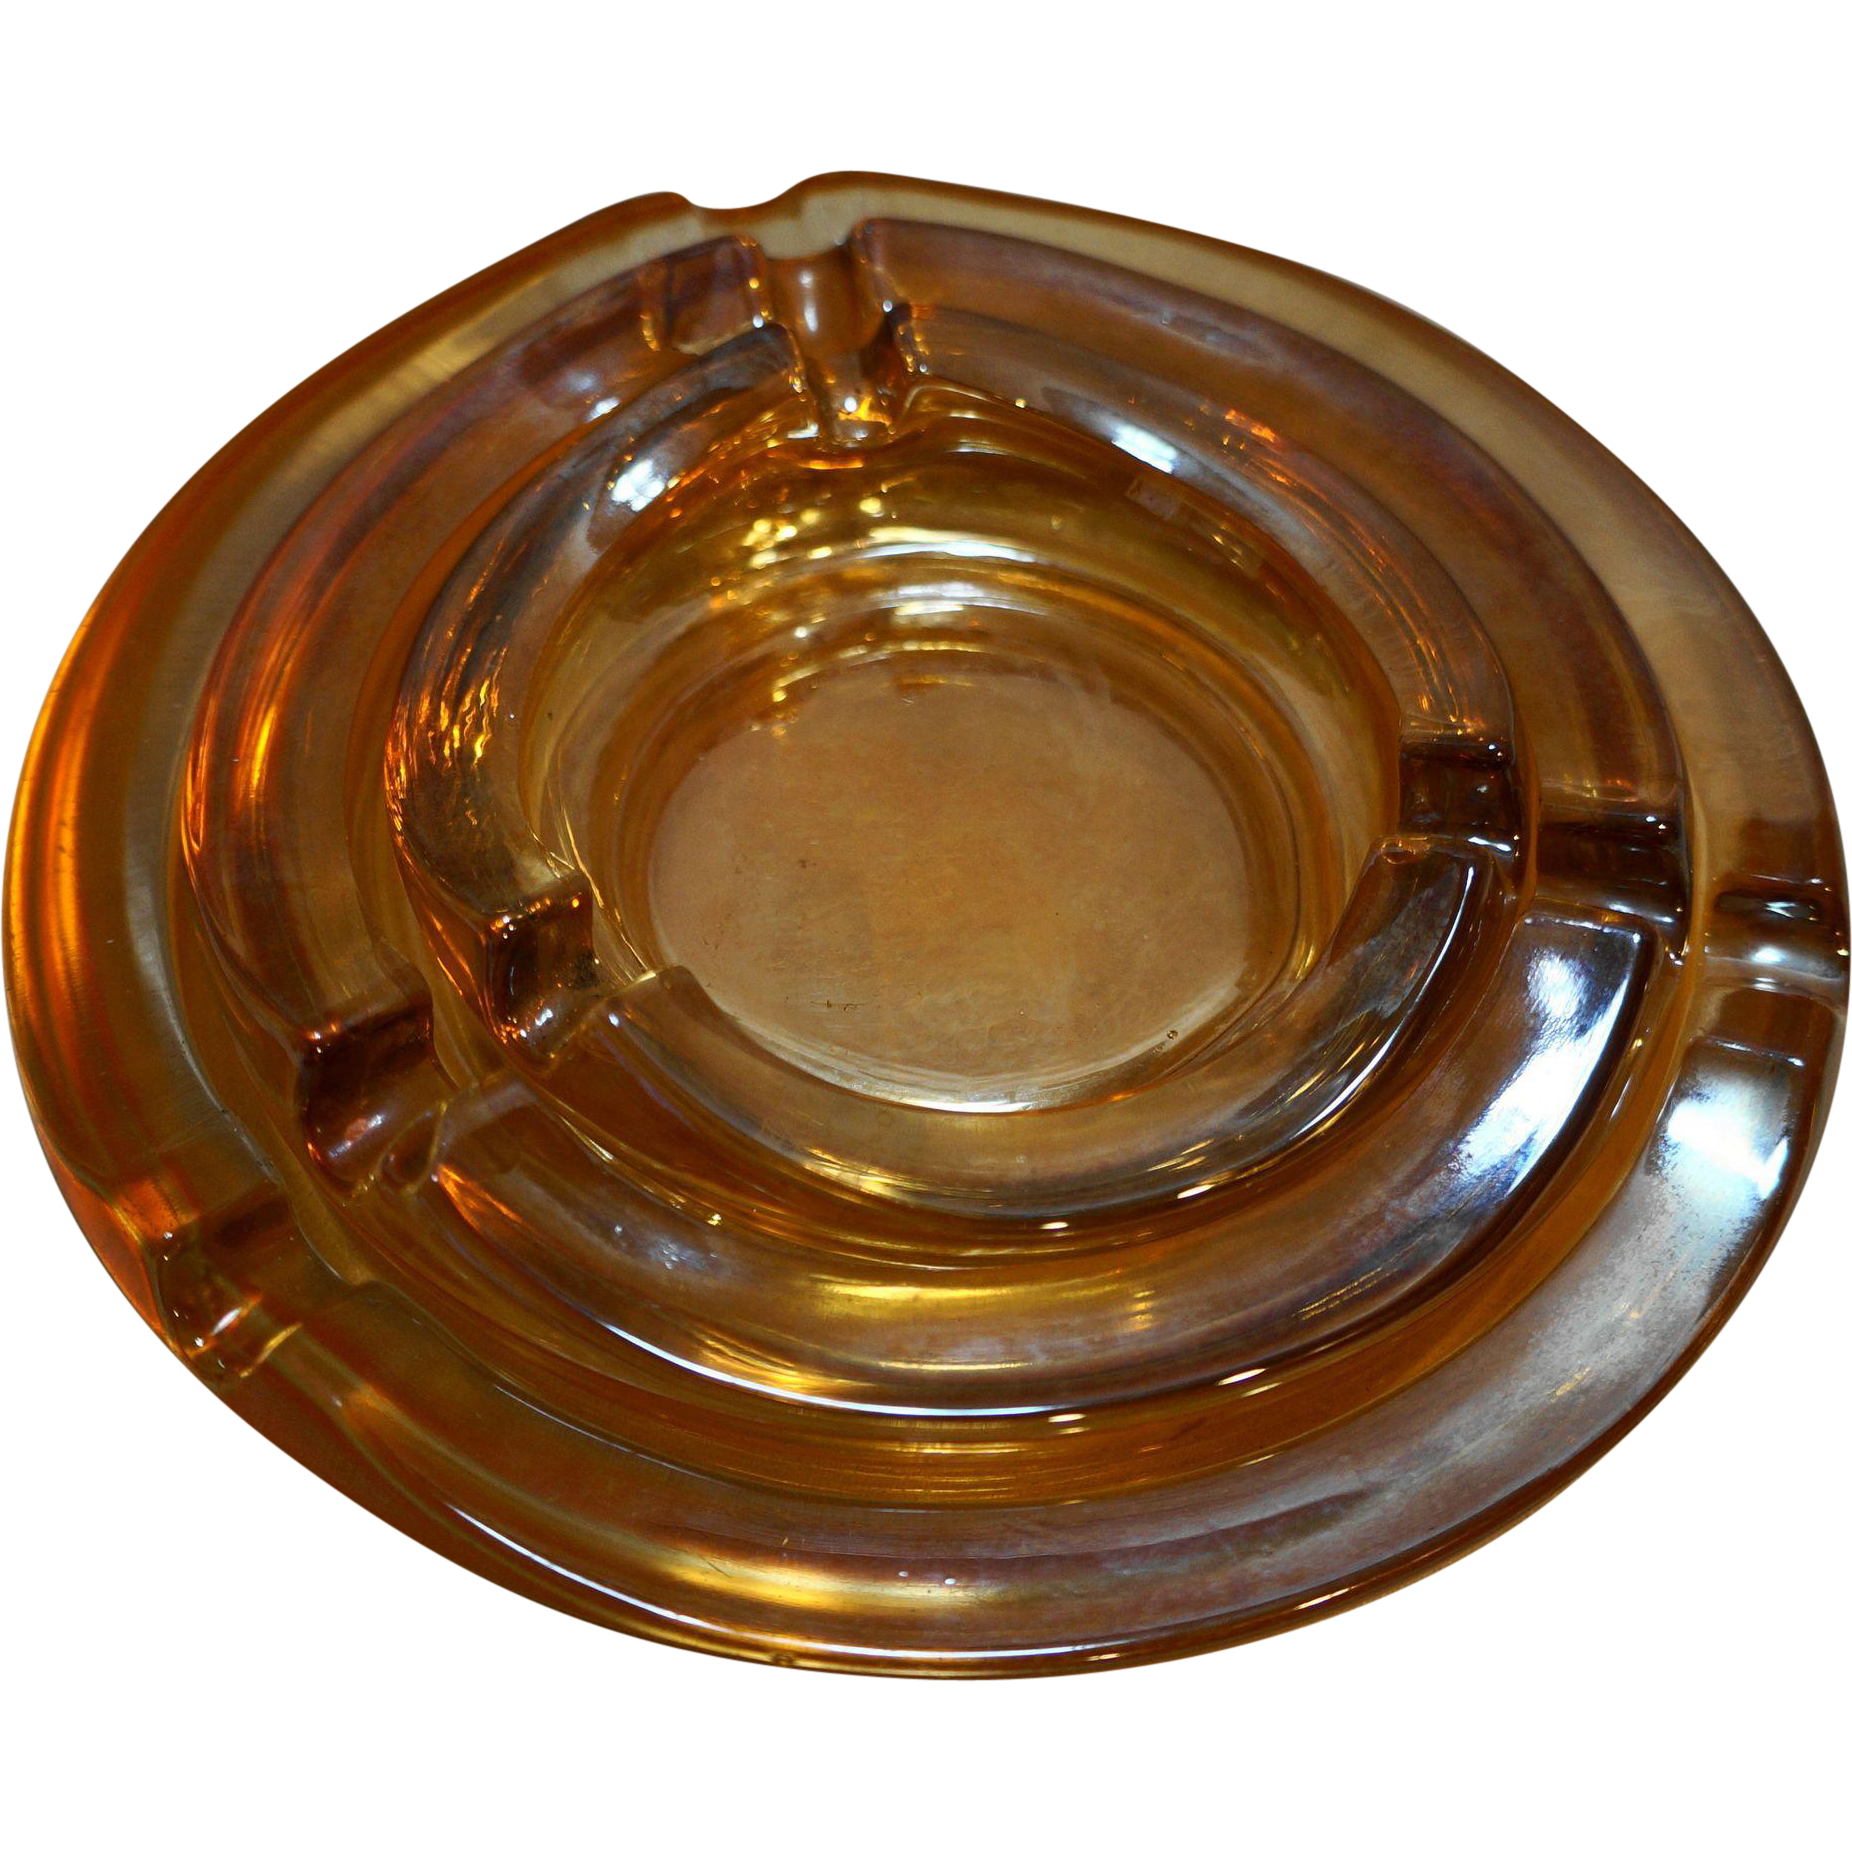 Marigold Carnival Depression Glass Nesting Ashtrays Pair